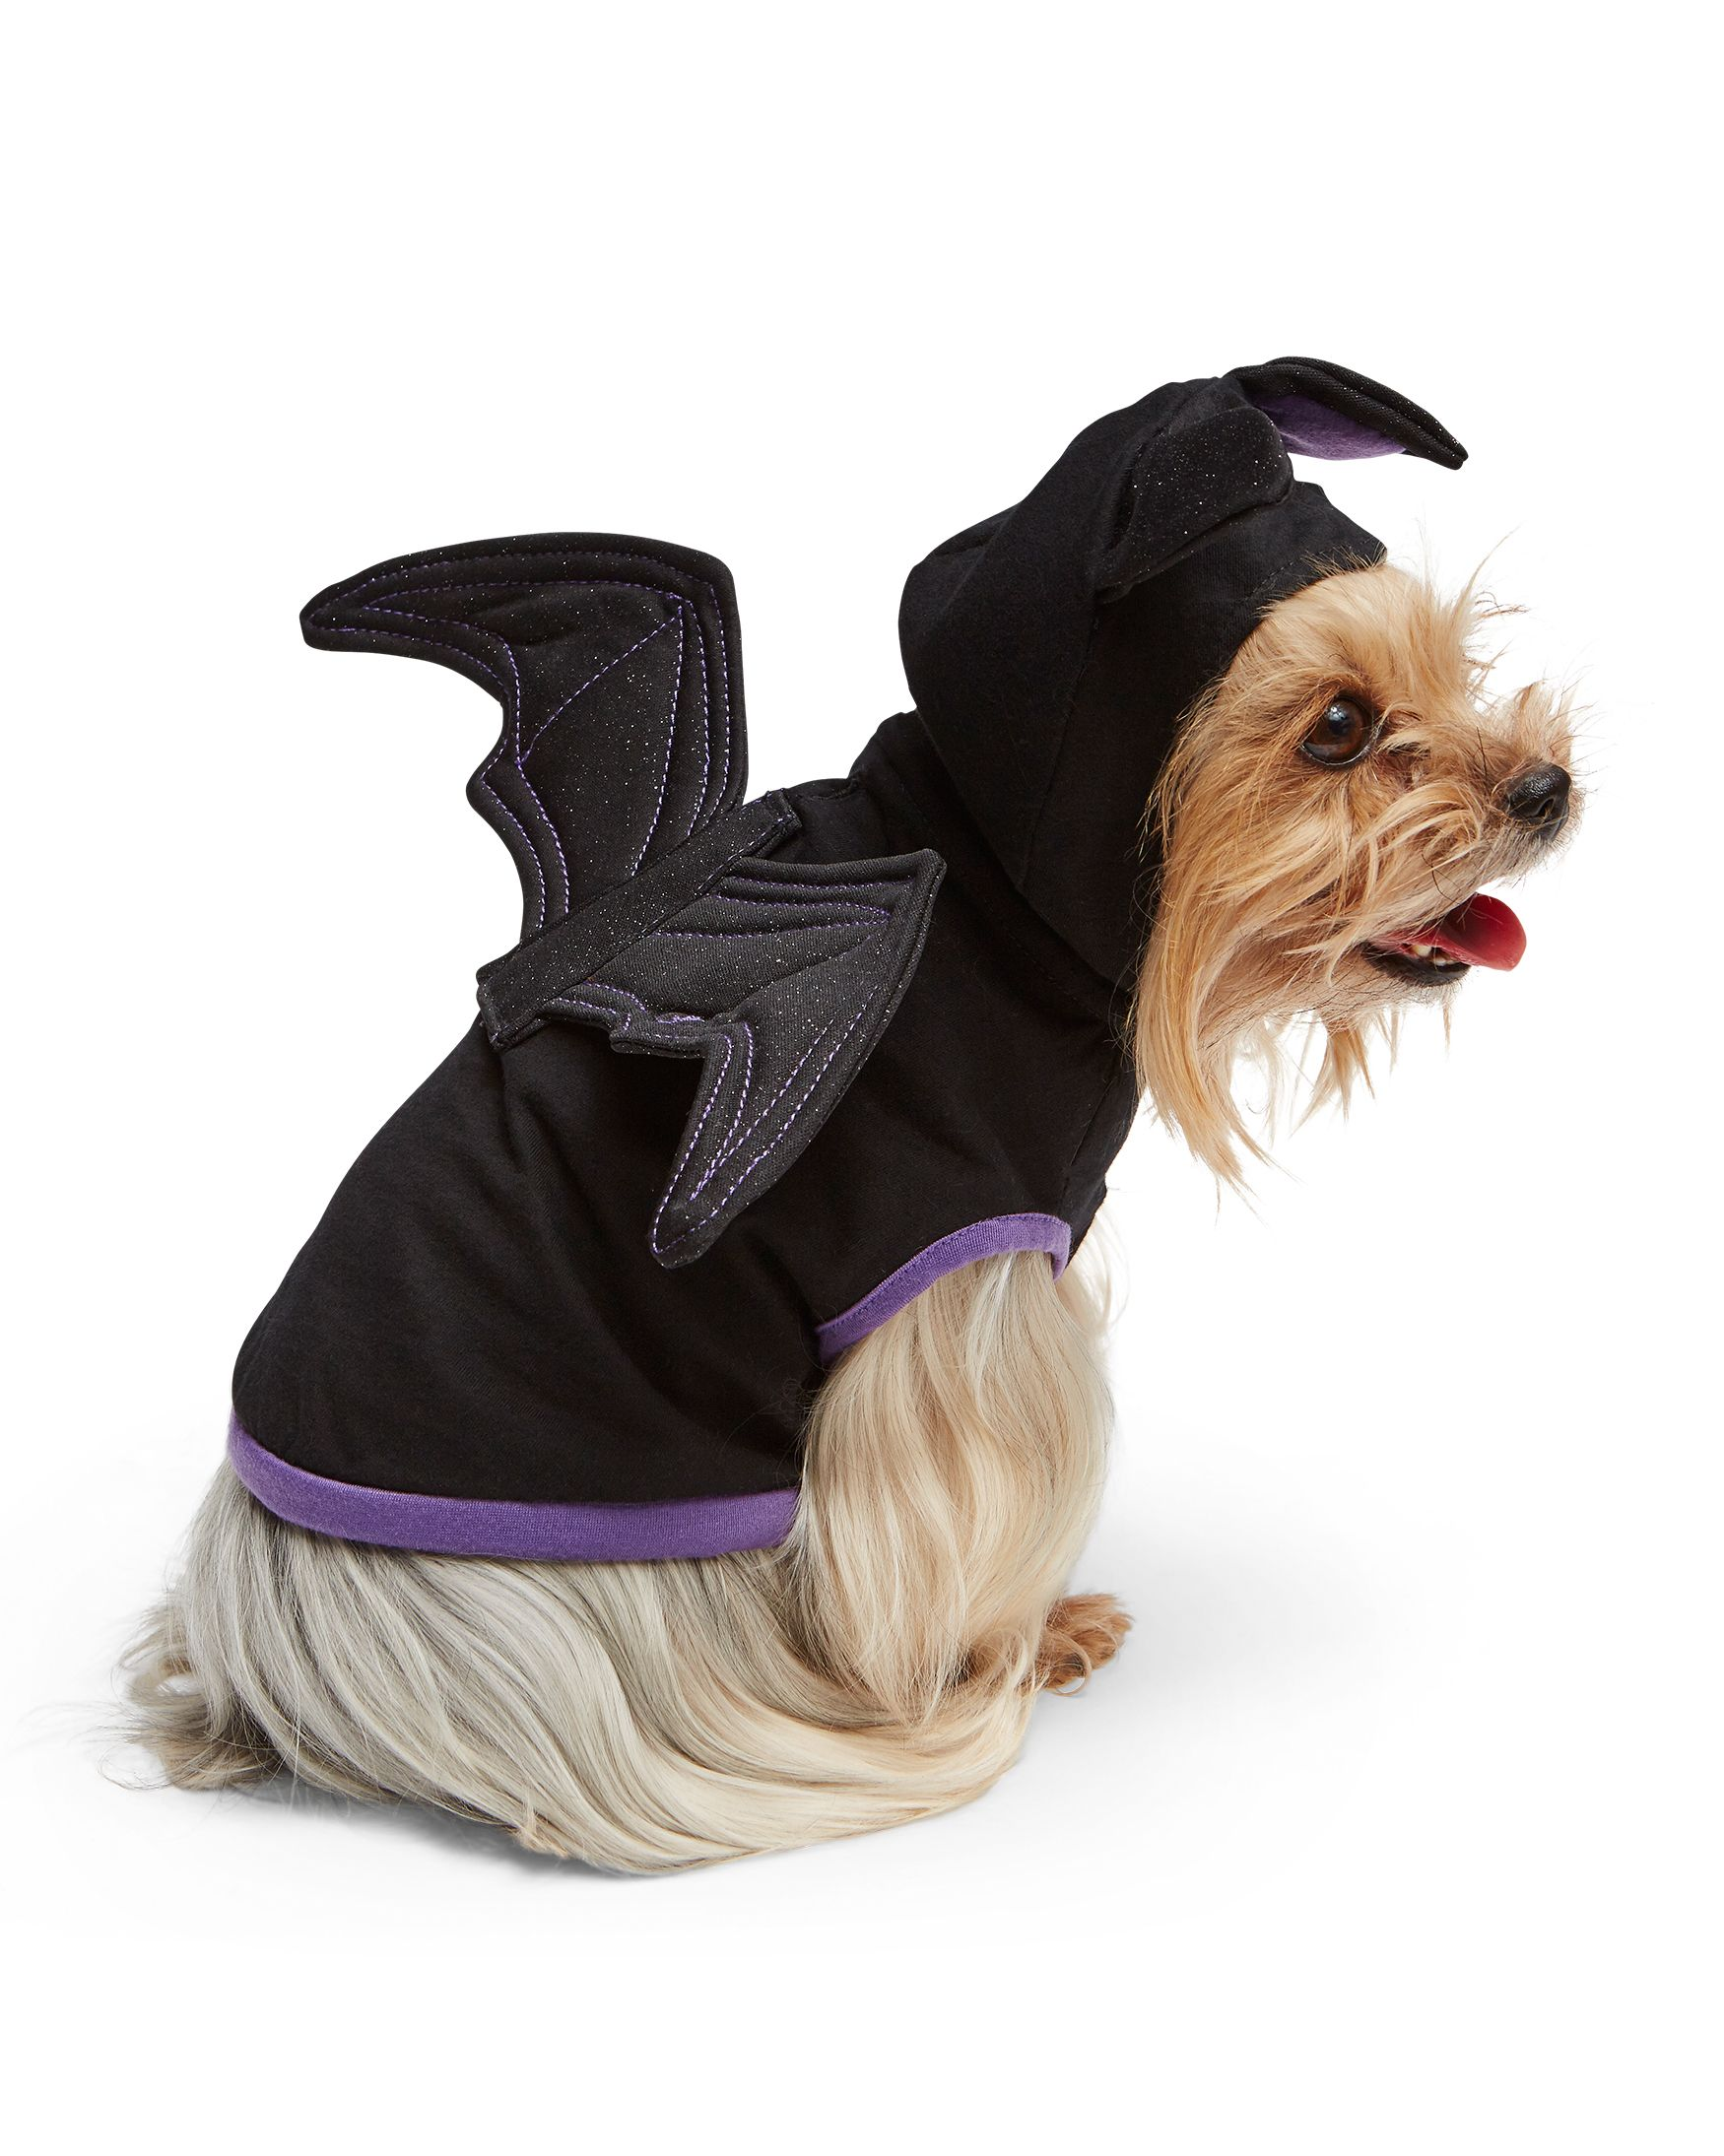 Matching Owner And Dog Costumes For A Pet Rifyingly Cute Halloween